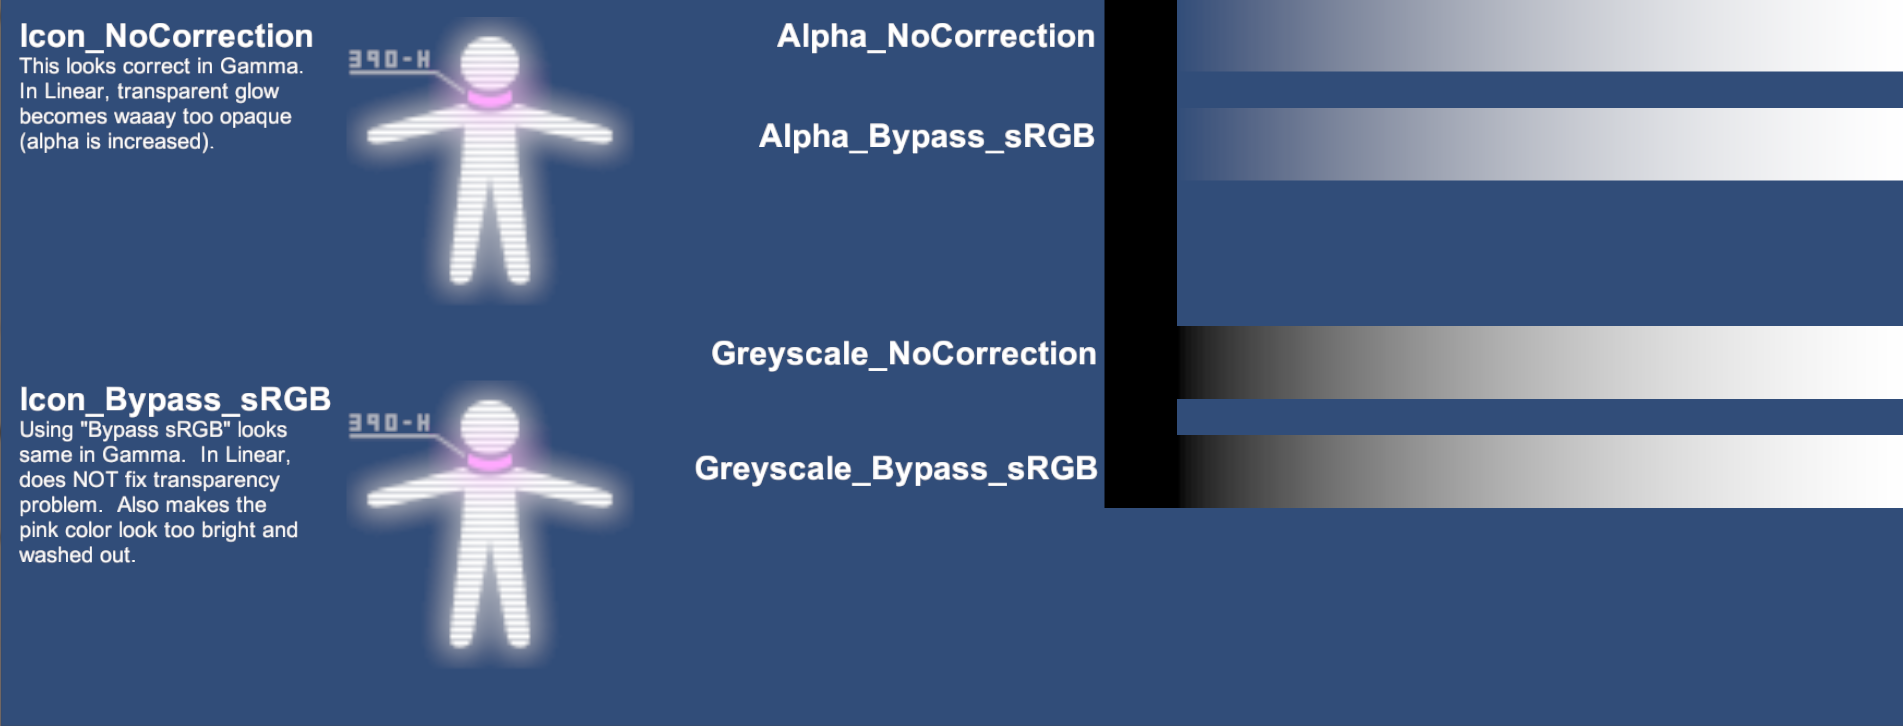 Bug with Bypass sRGB Sampling? - Unity Forum